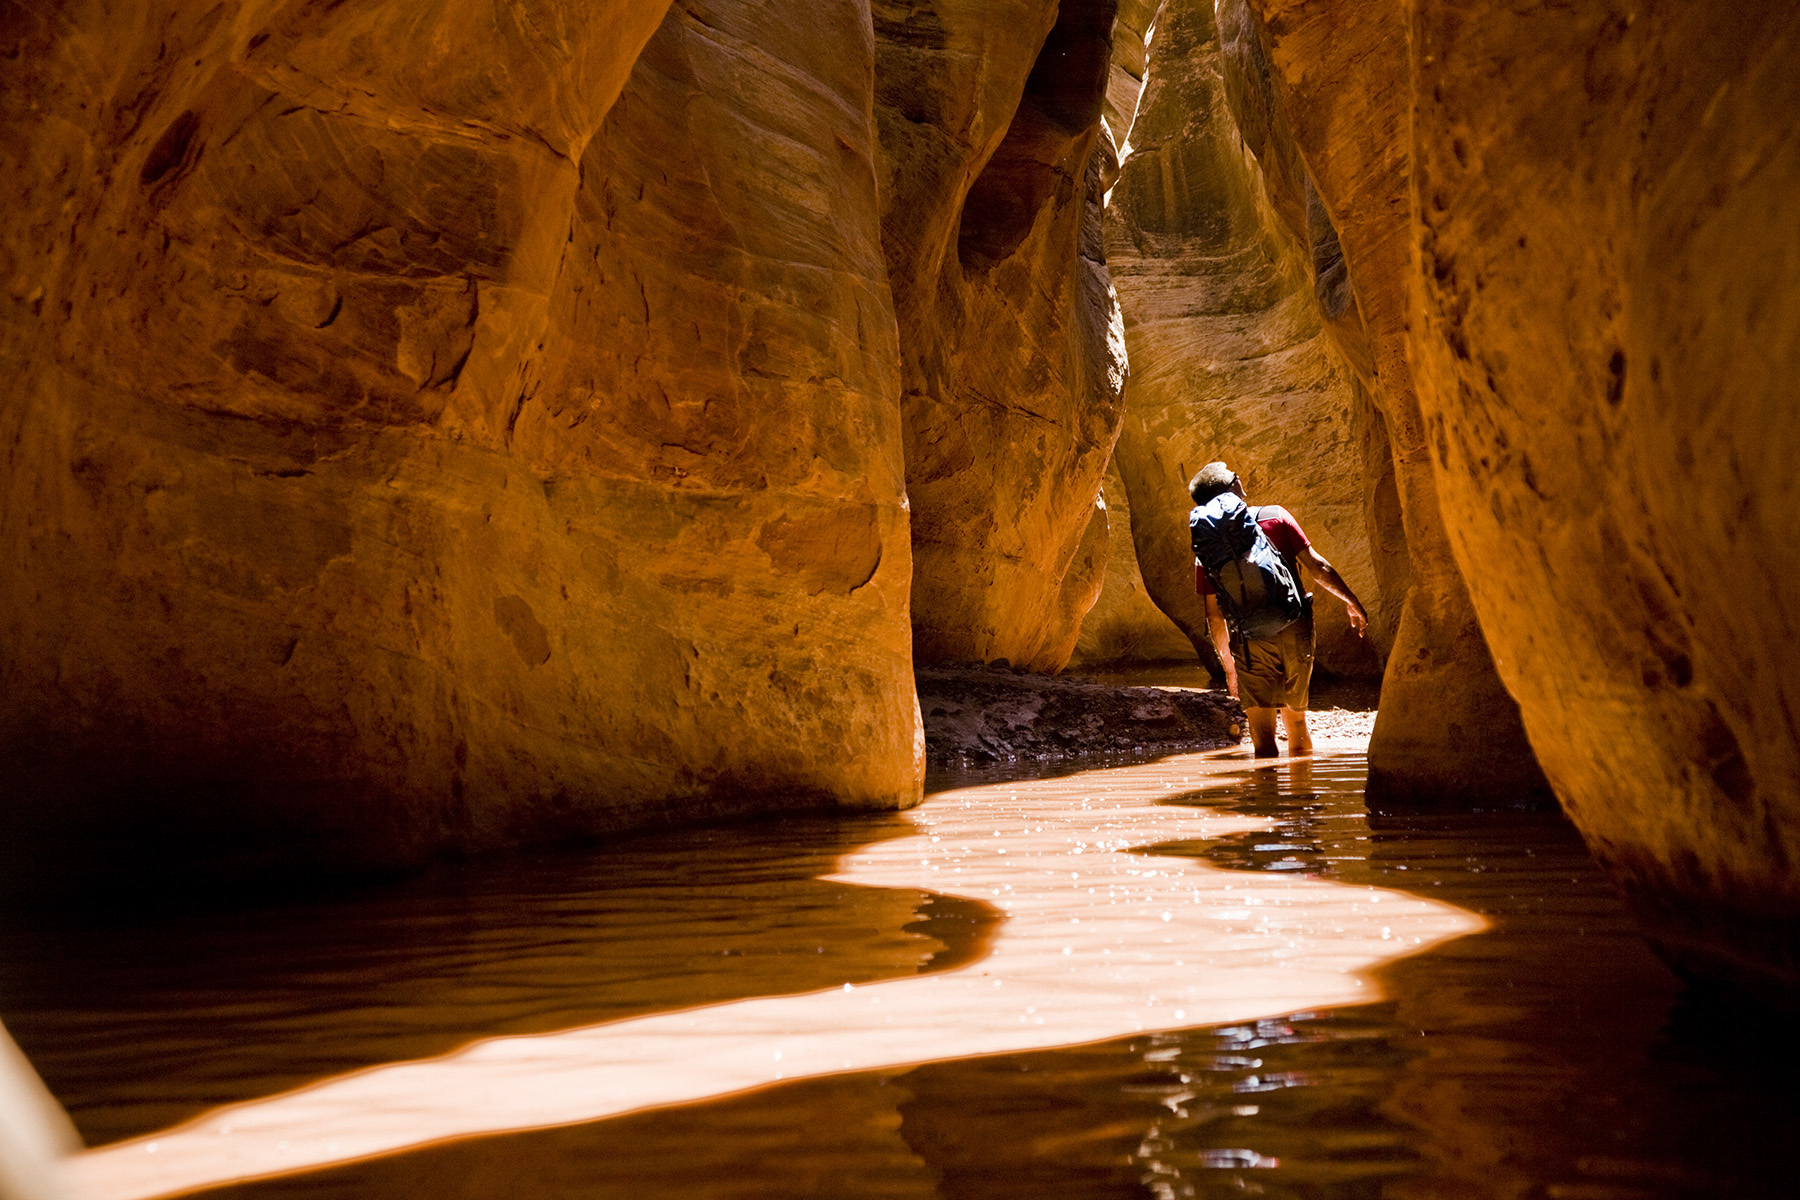 Aron Smith, Fry Canyon, Utah